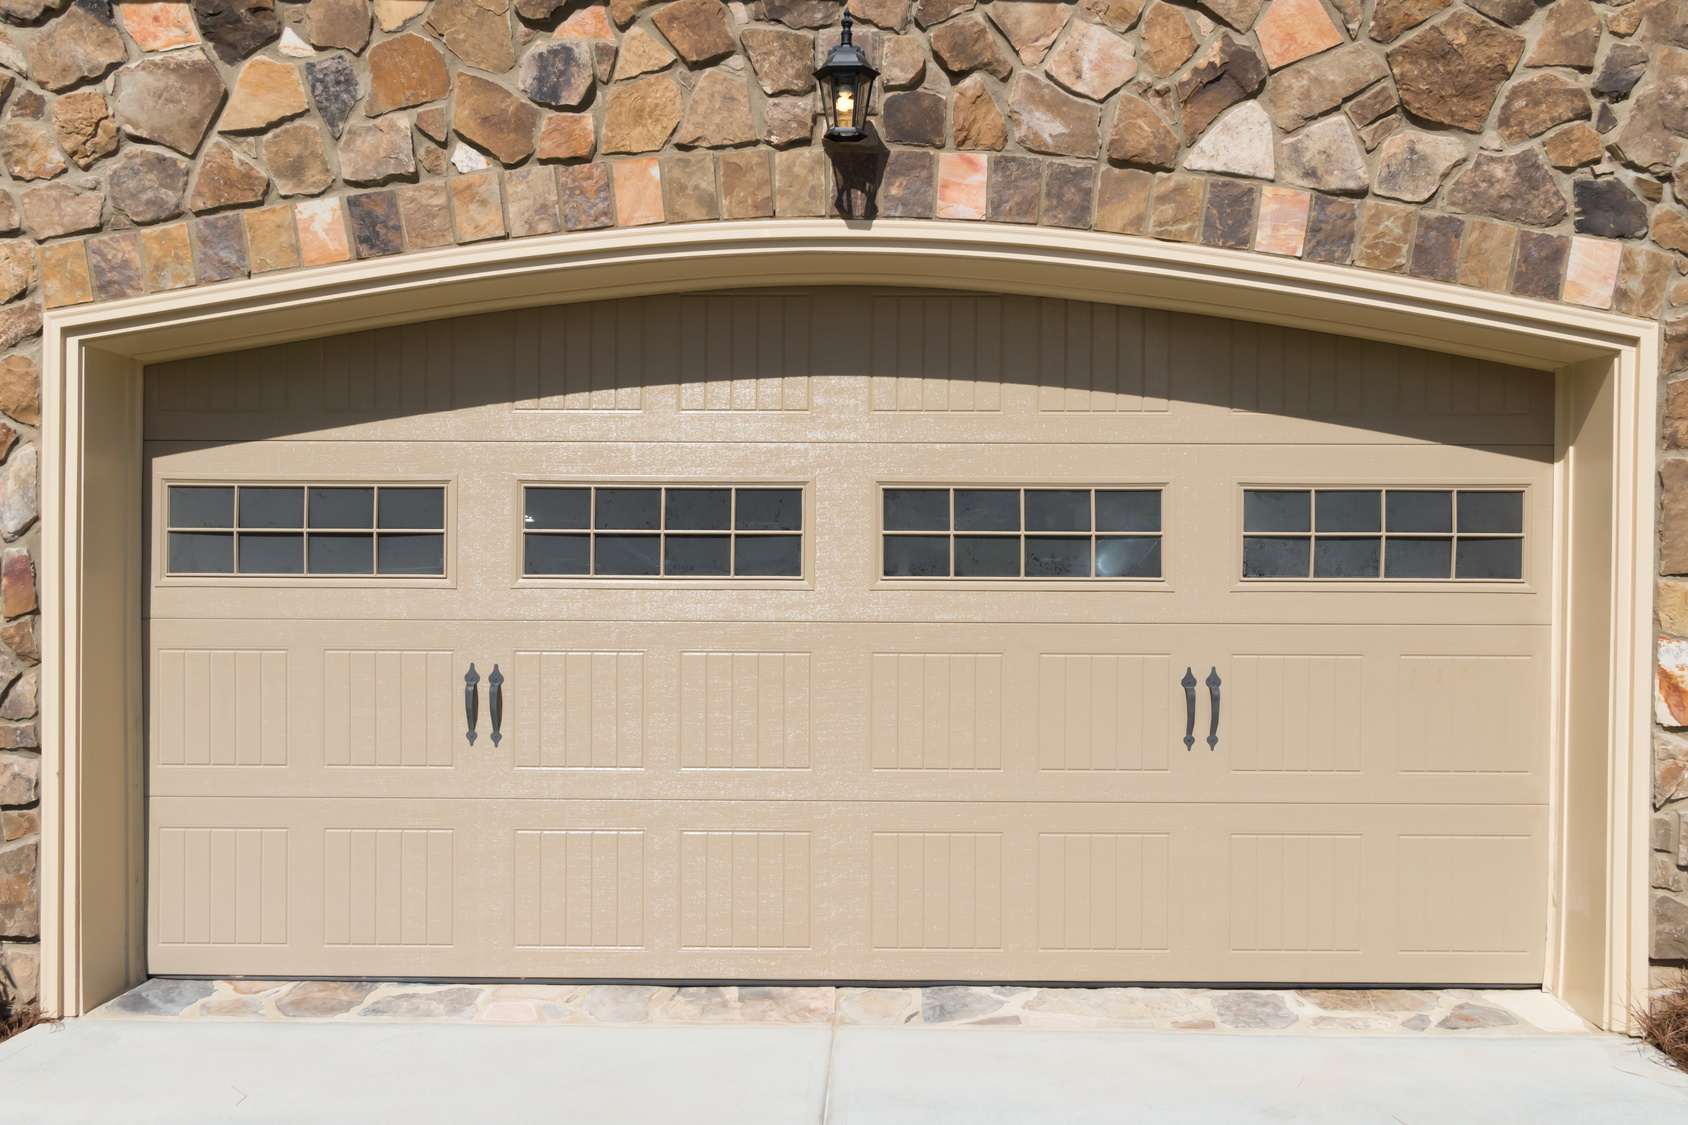 Overhead Garage Door Repair On A Budget Teds Garage